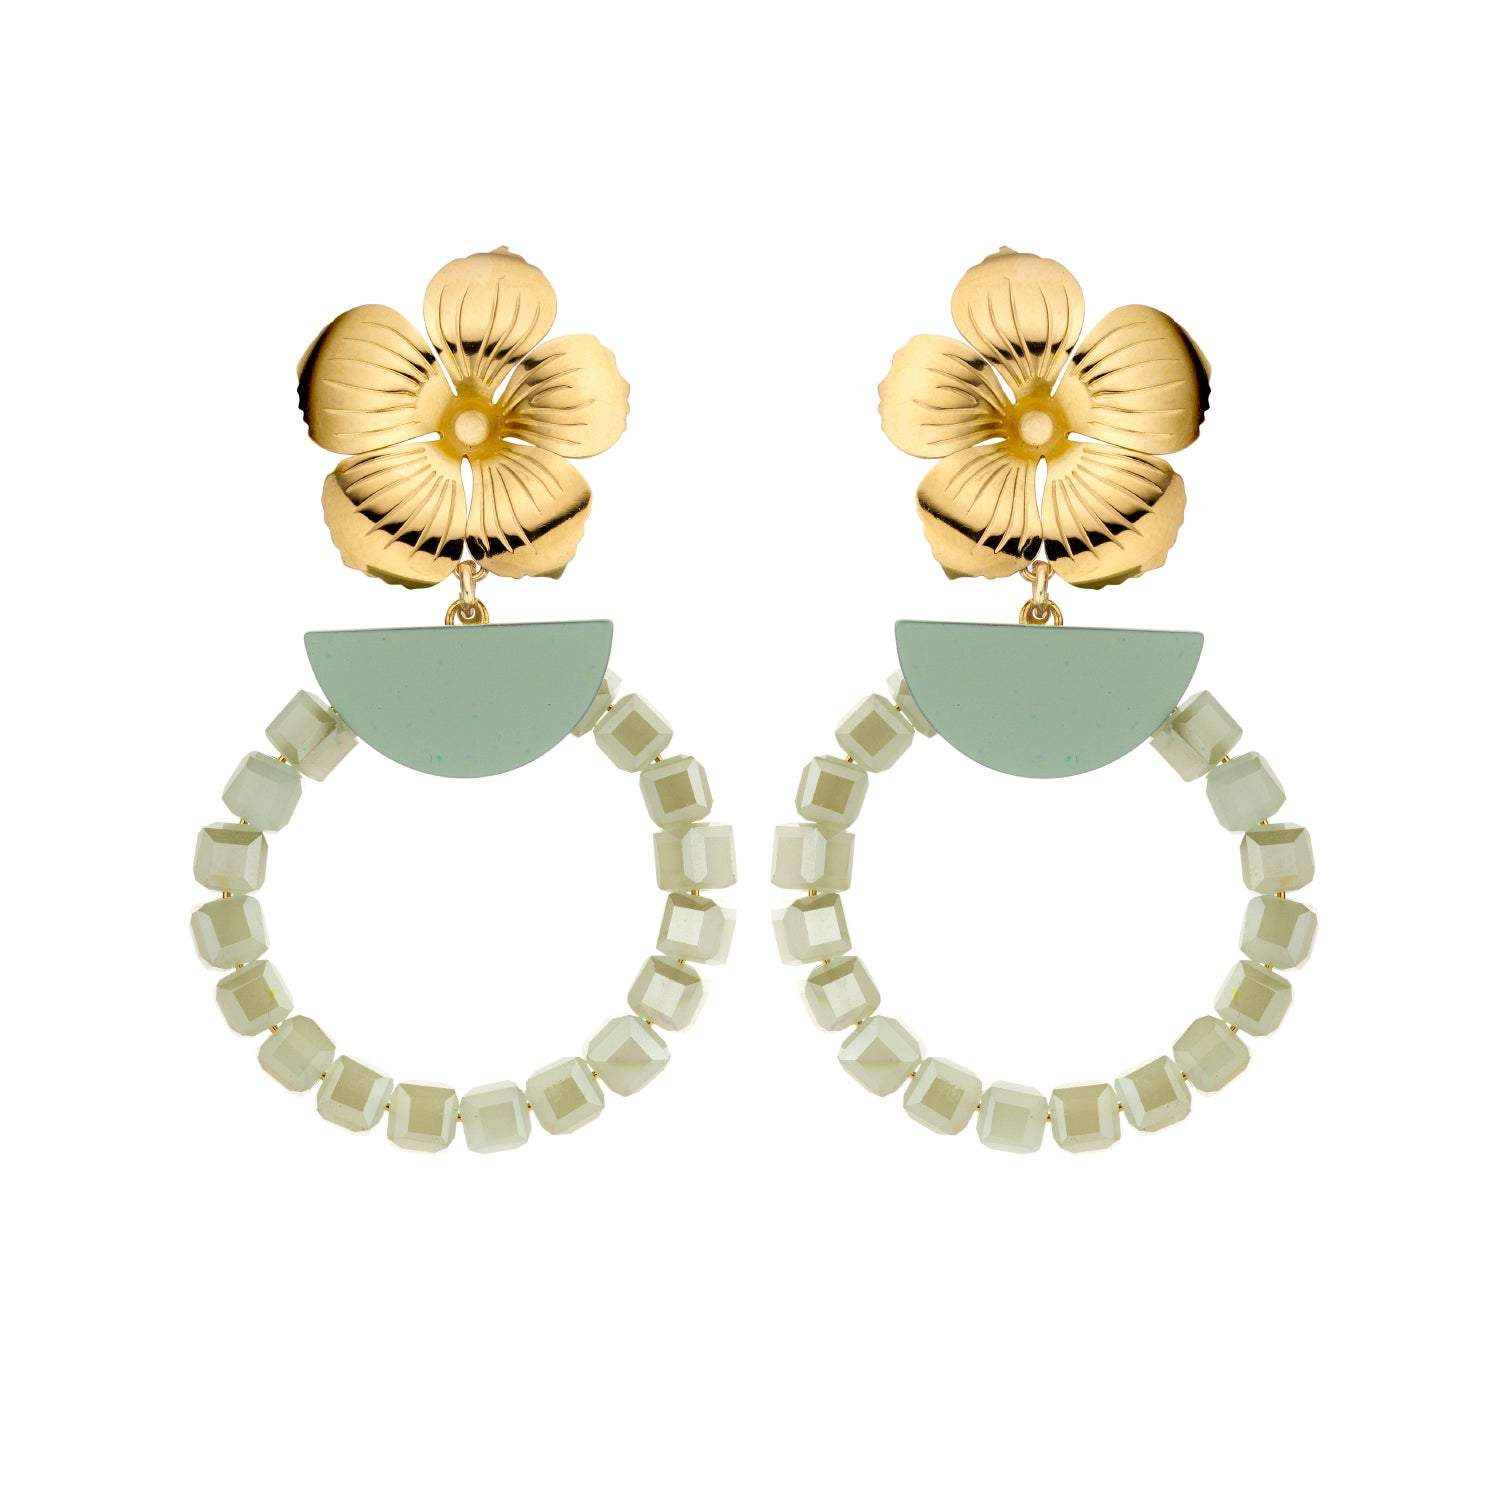 Floral mint earrings - Souvenirs de Pomme